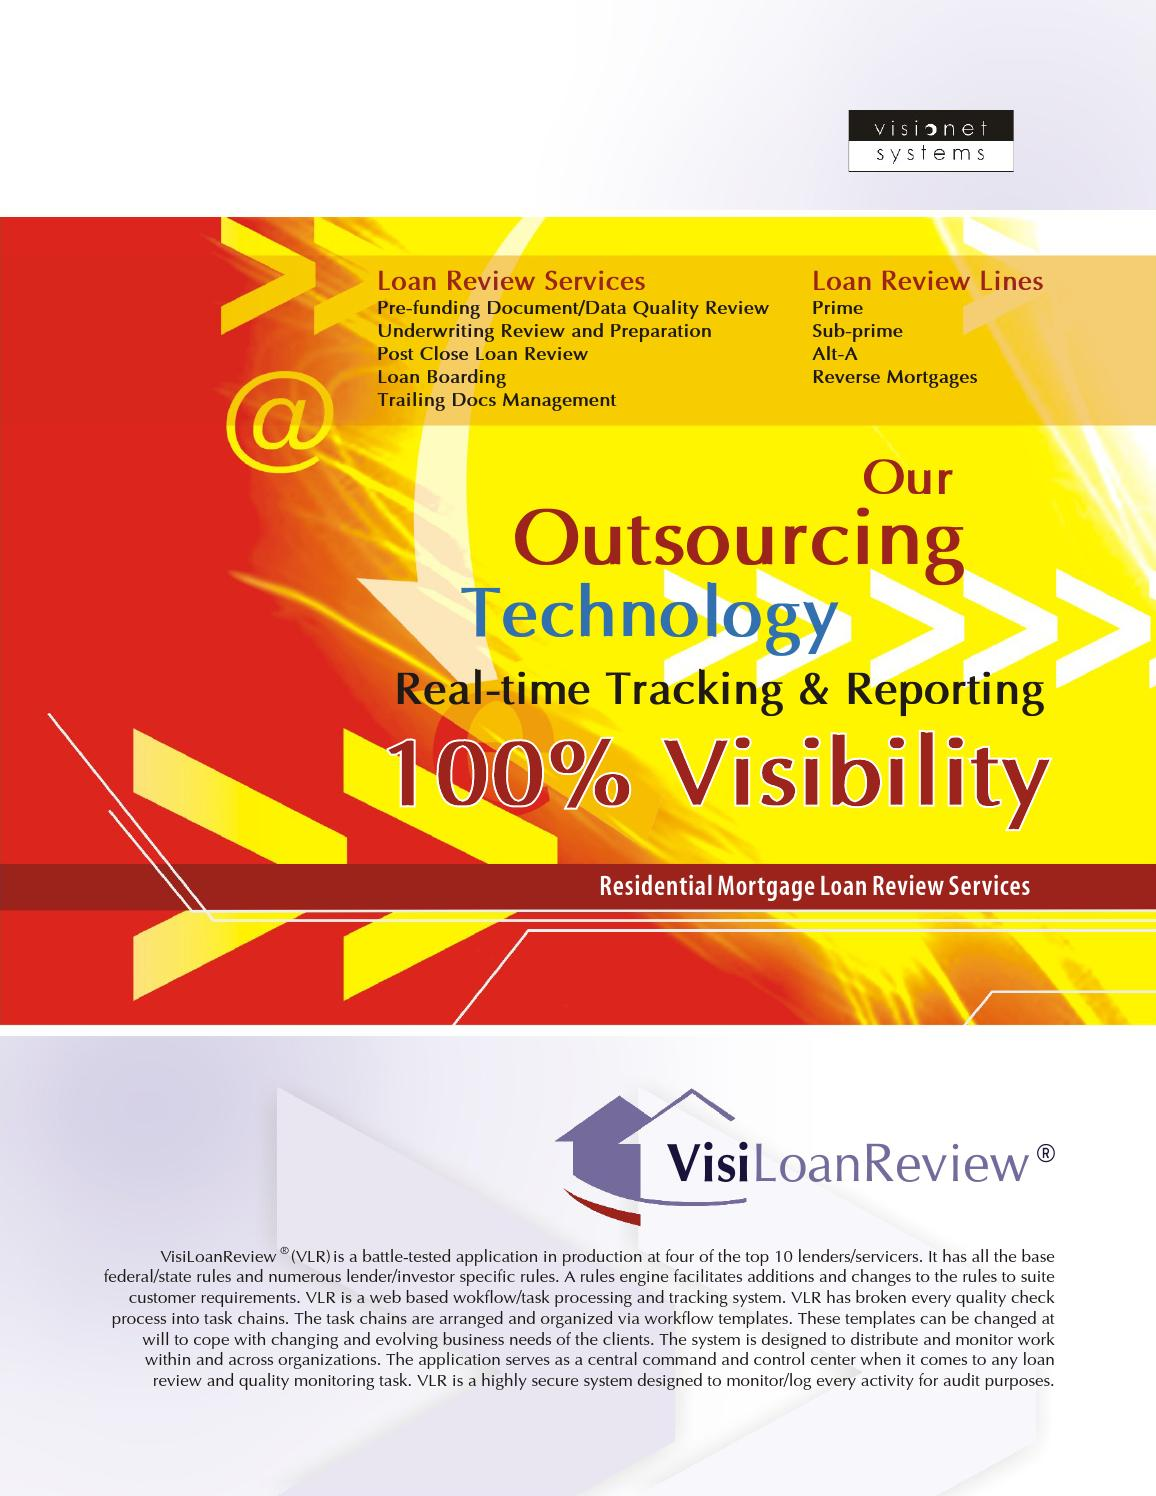 Quality underwriting services reviews